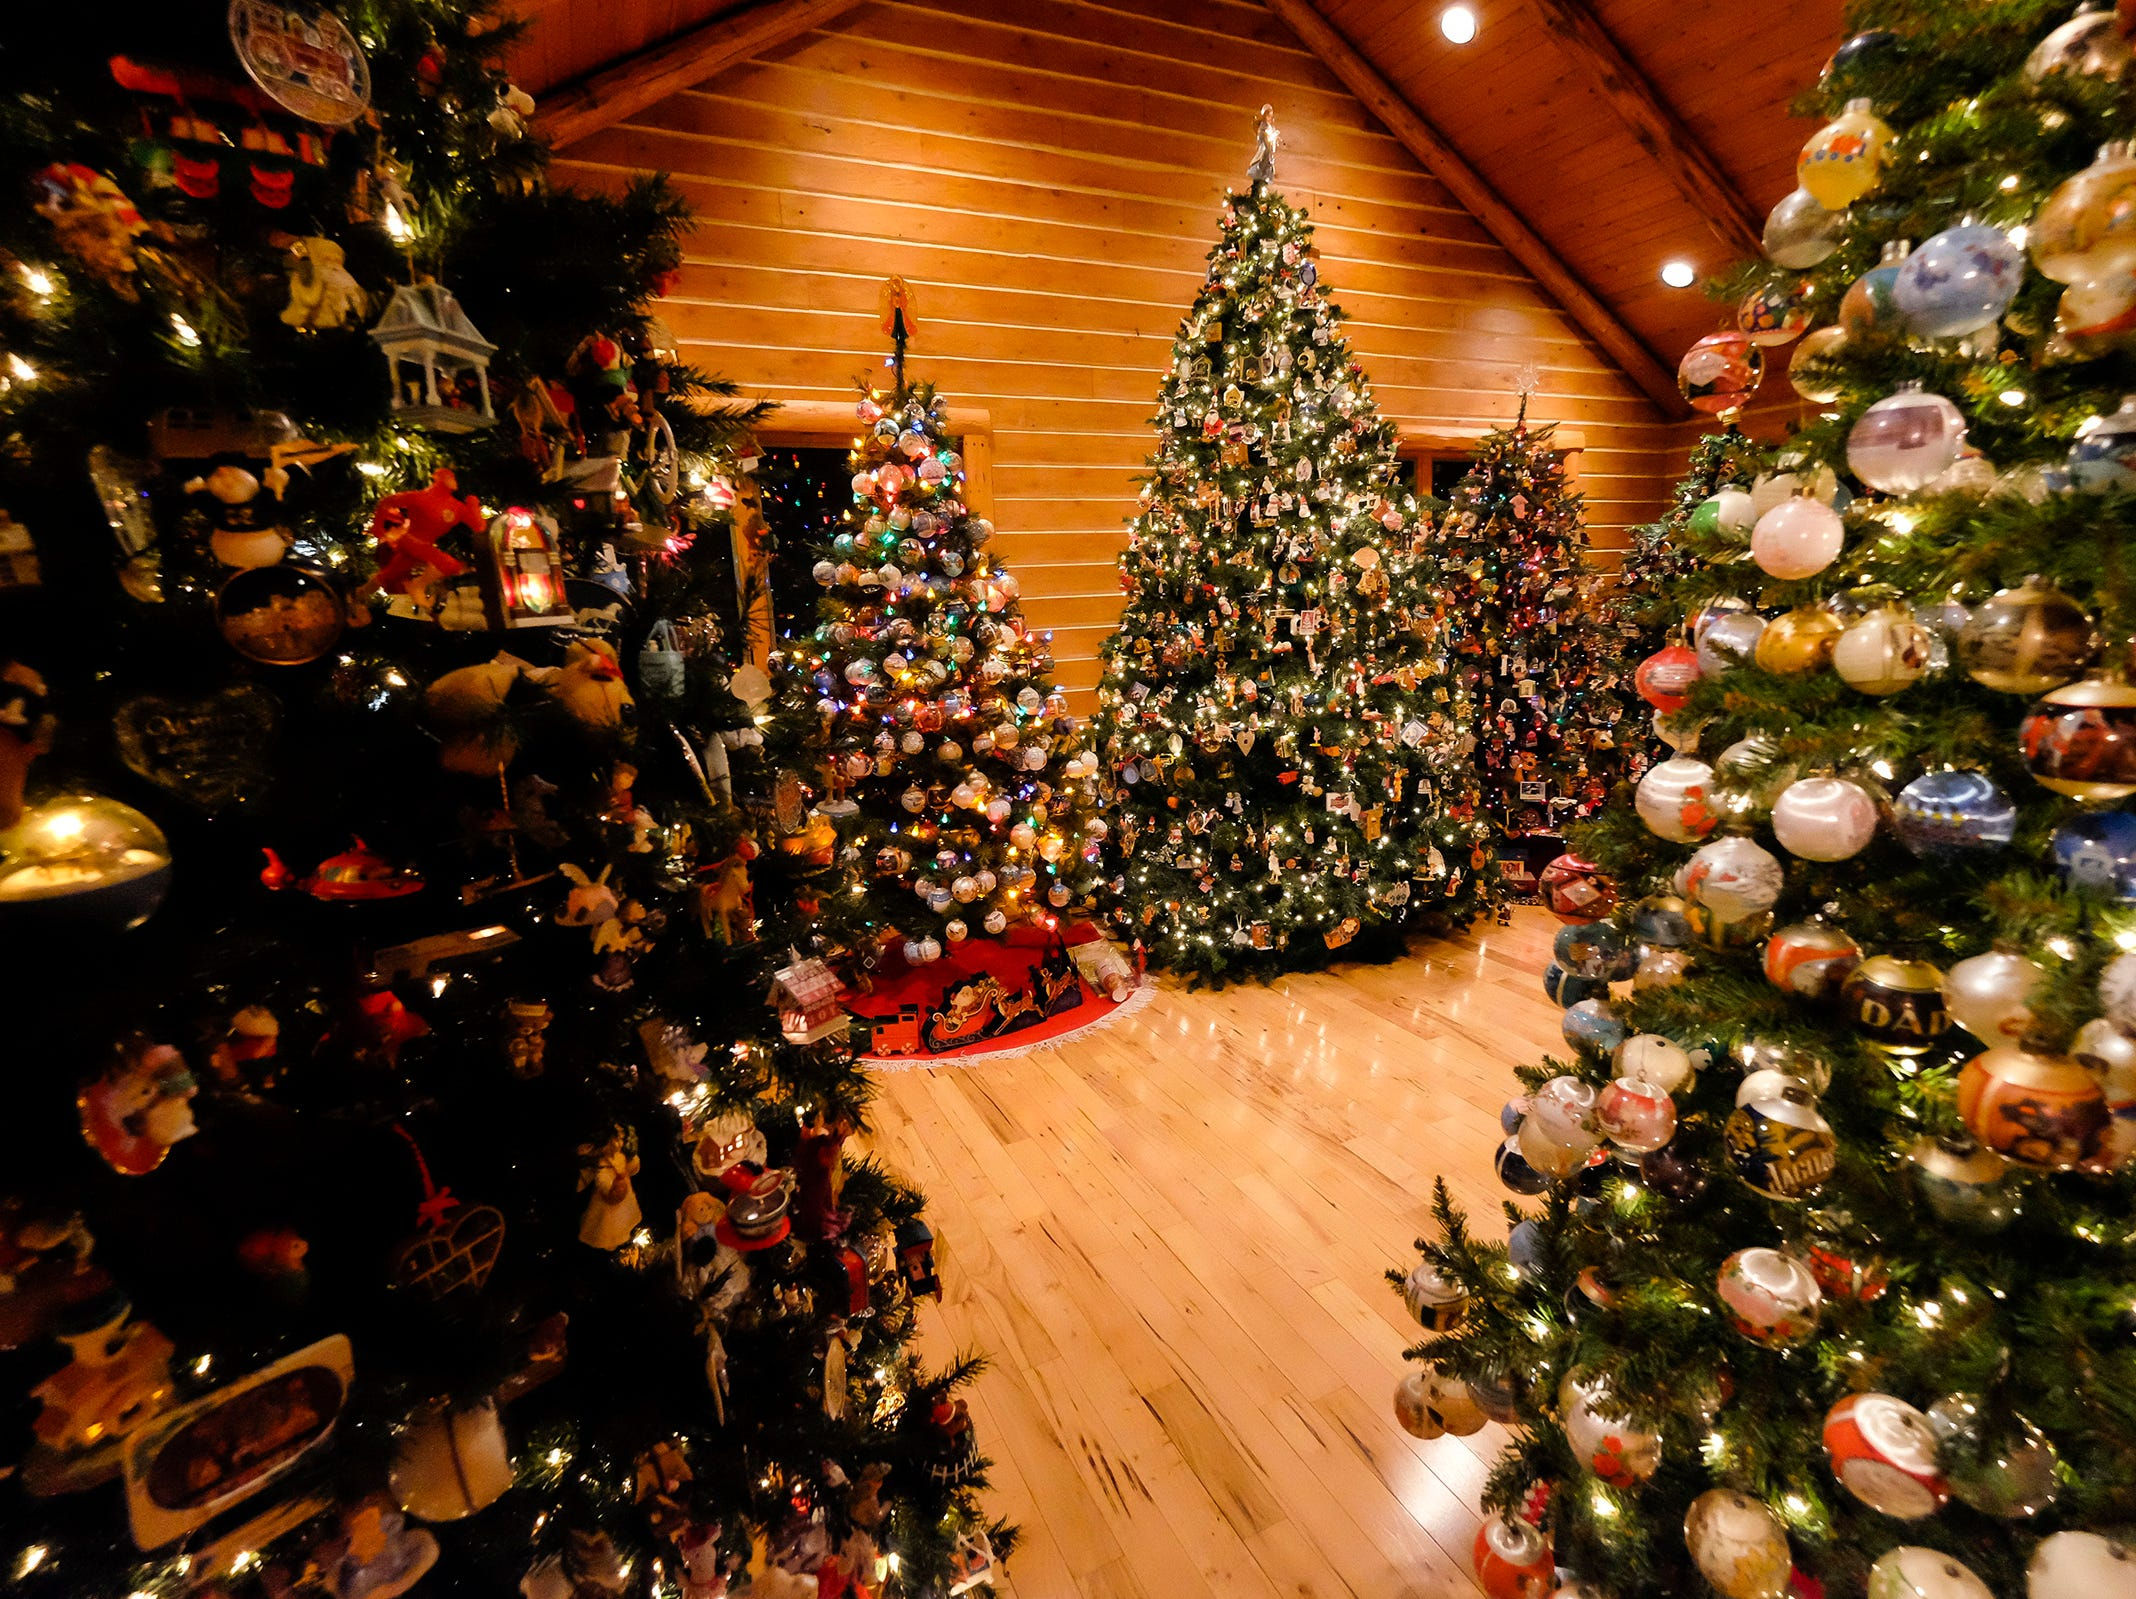 Christmas trees decorated with different themes are arranged in a third-floor room for the annual History of the Christmas Tree Walk at Al and Diane Kodet's home in Algonac.